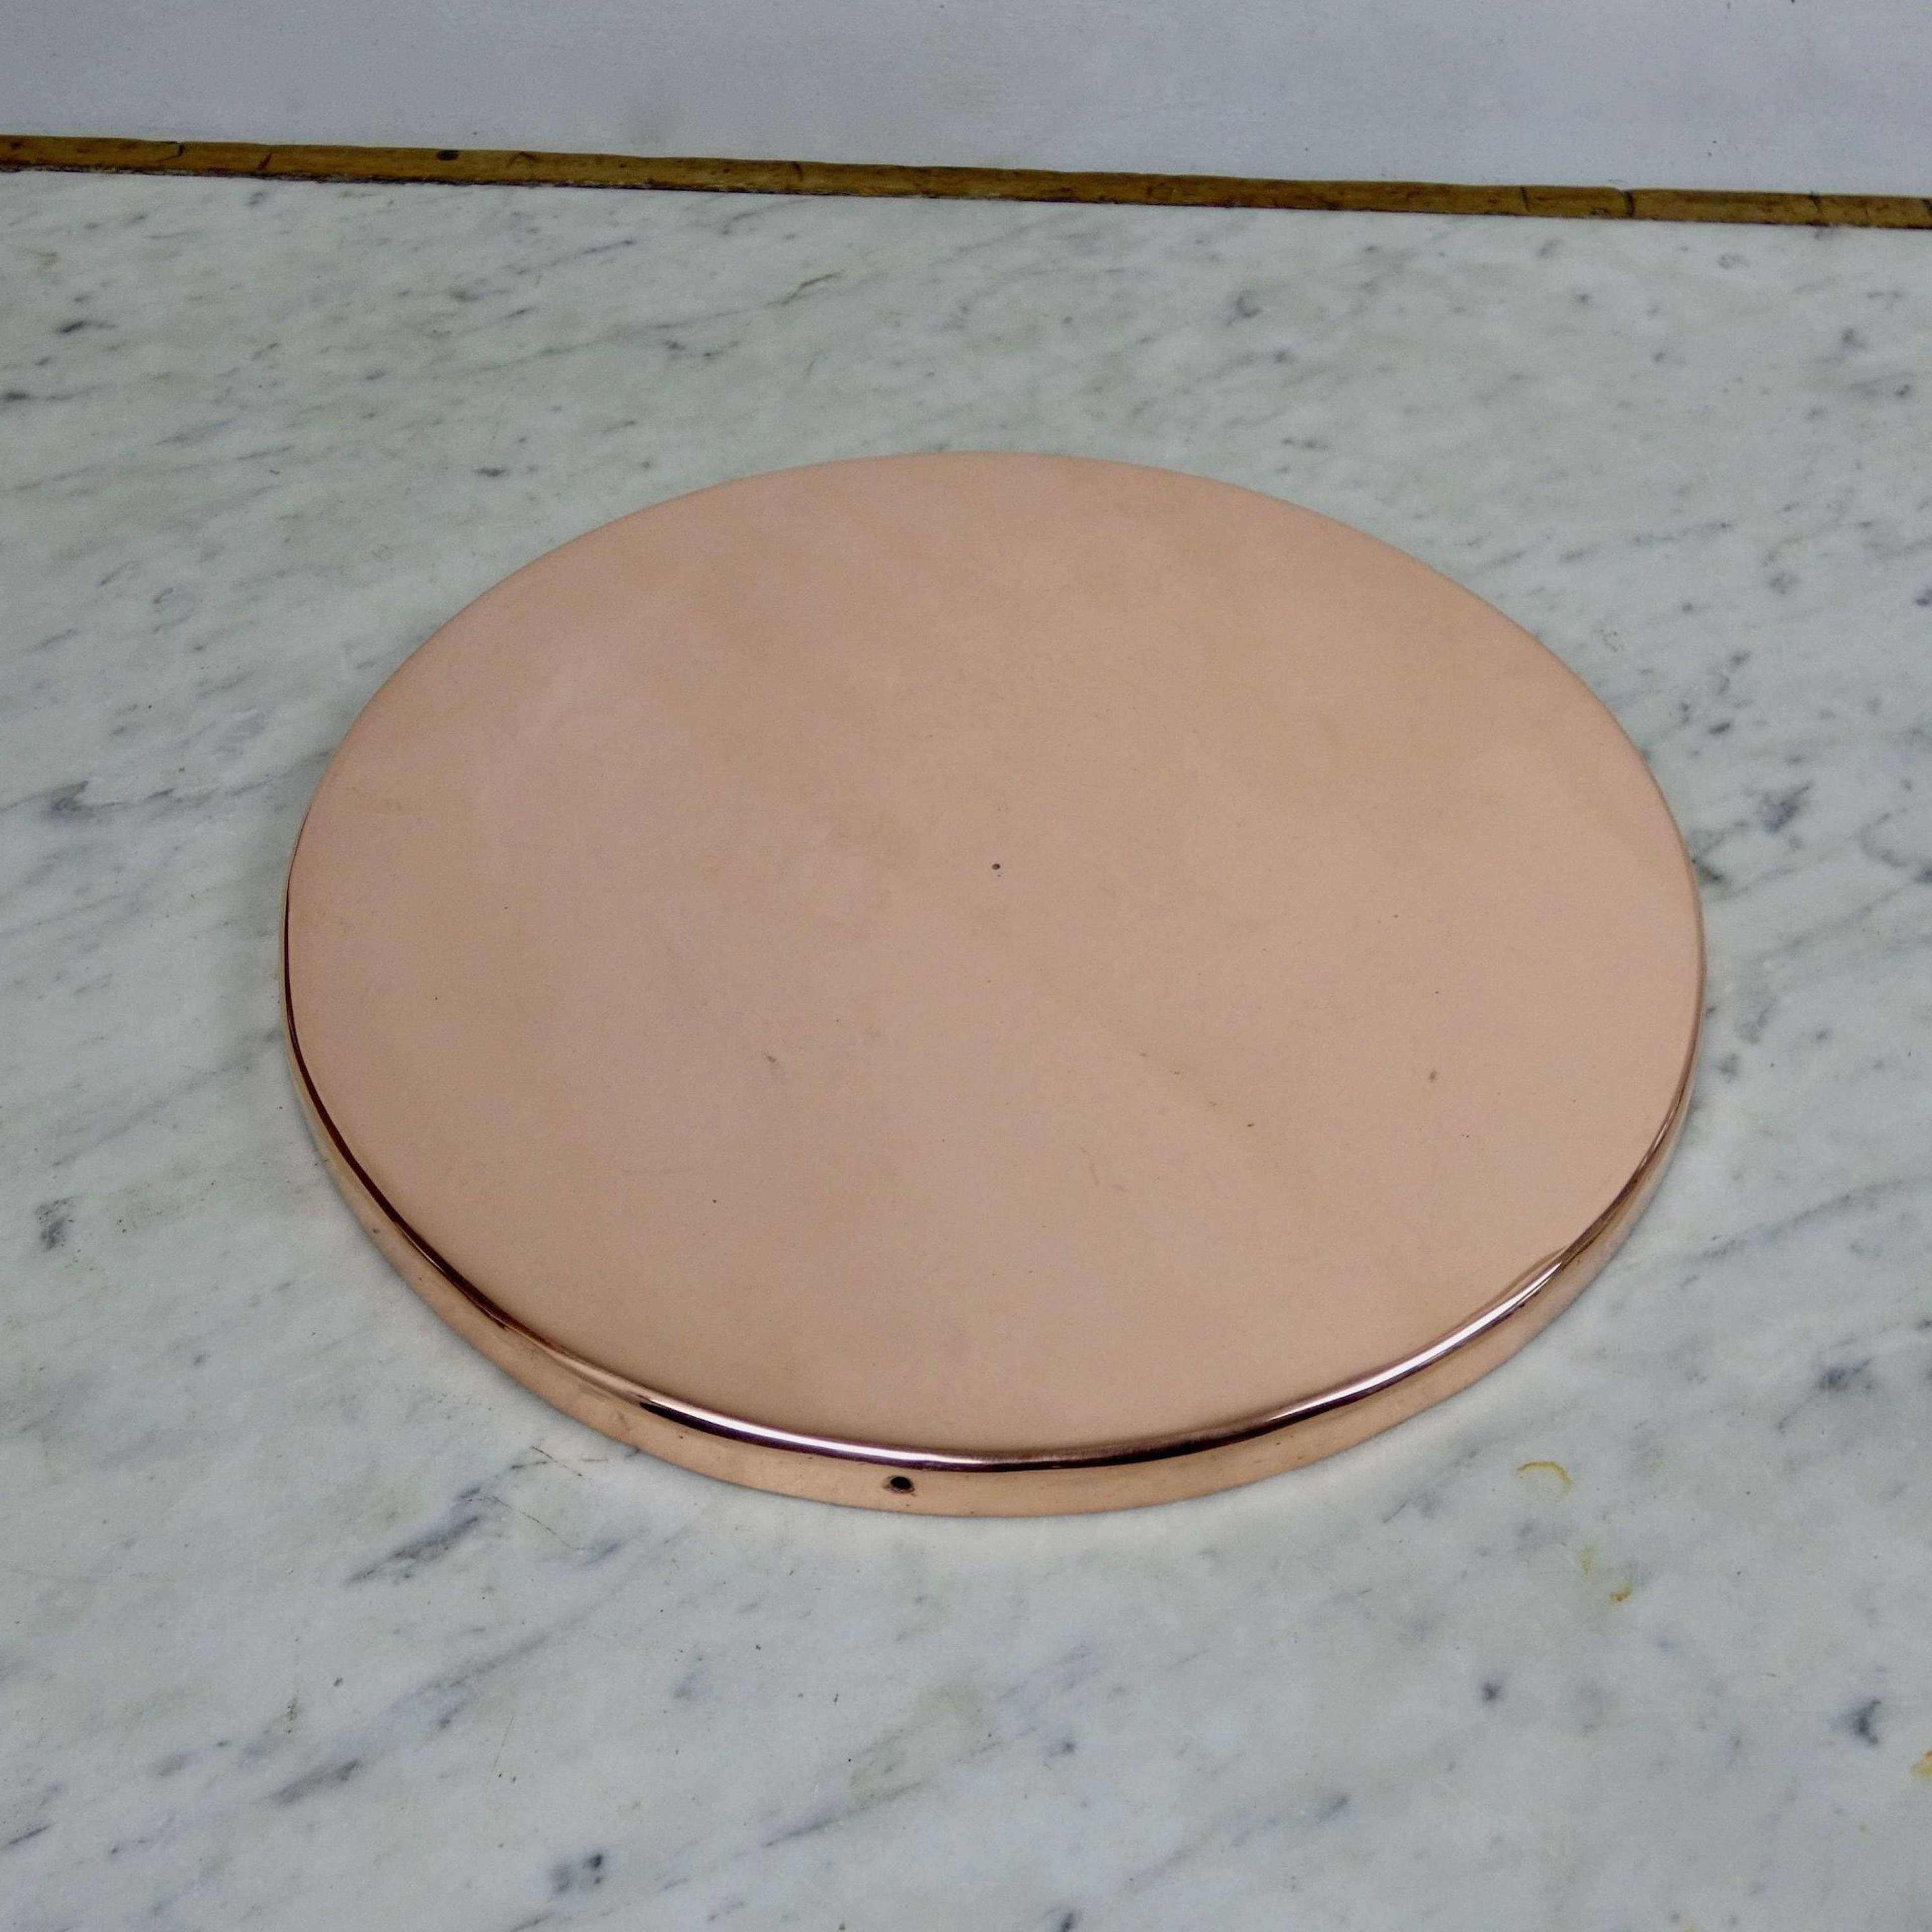 Copper baking sheet or tray